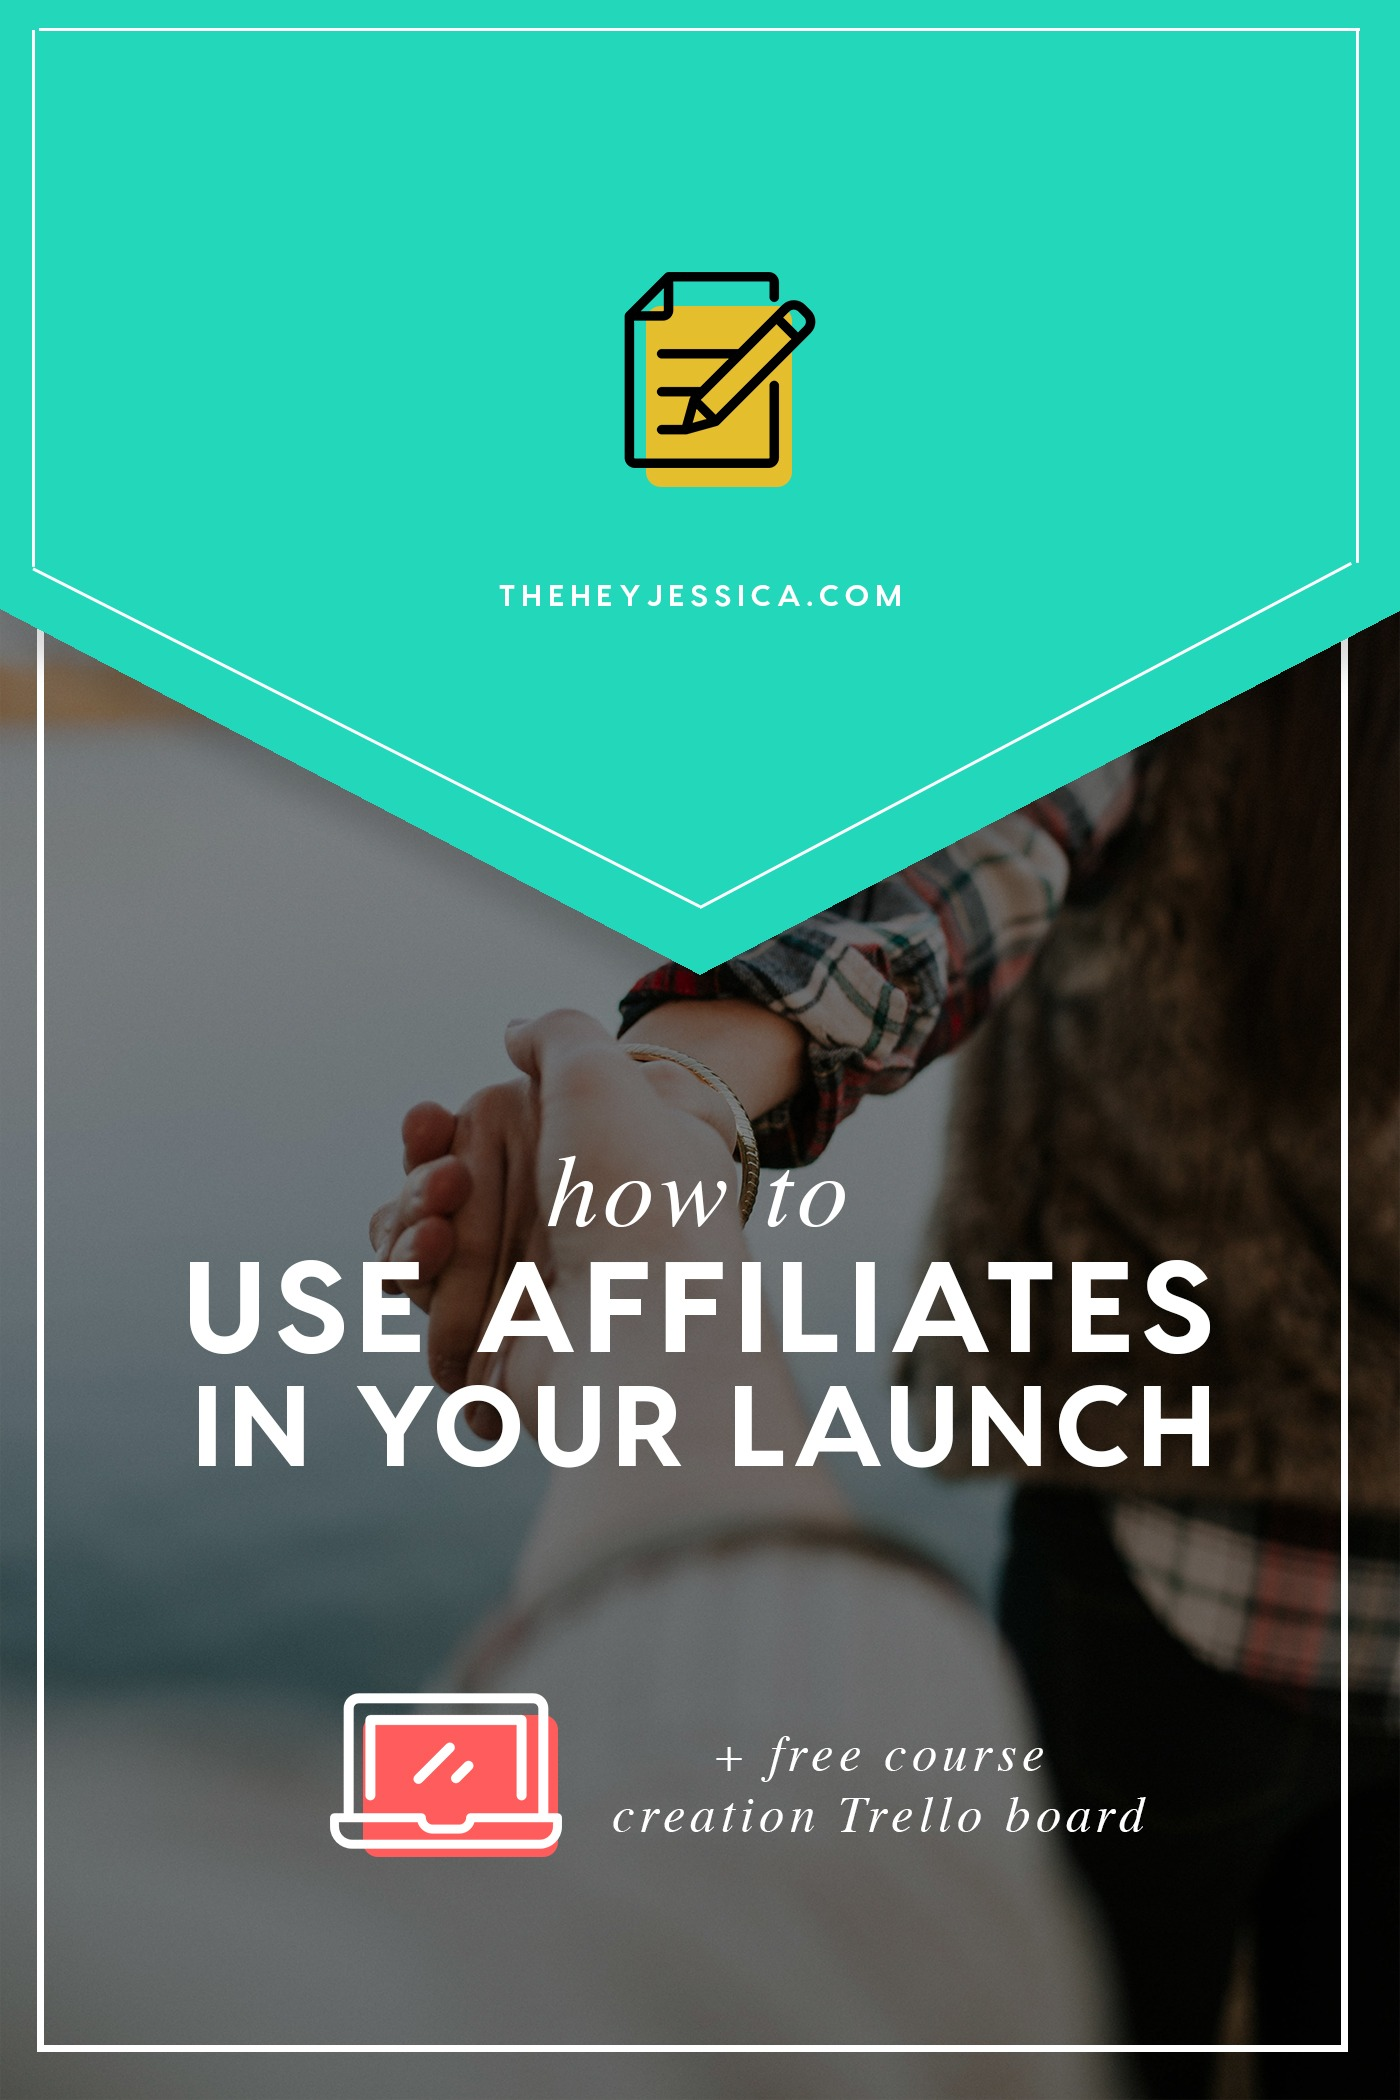 Redirect affiliate Thinkific